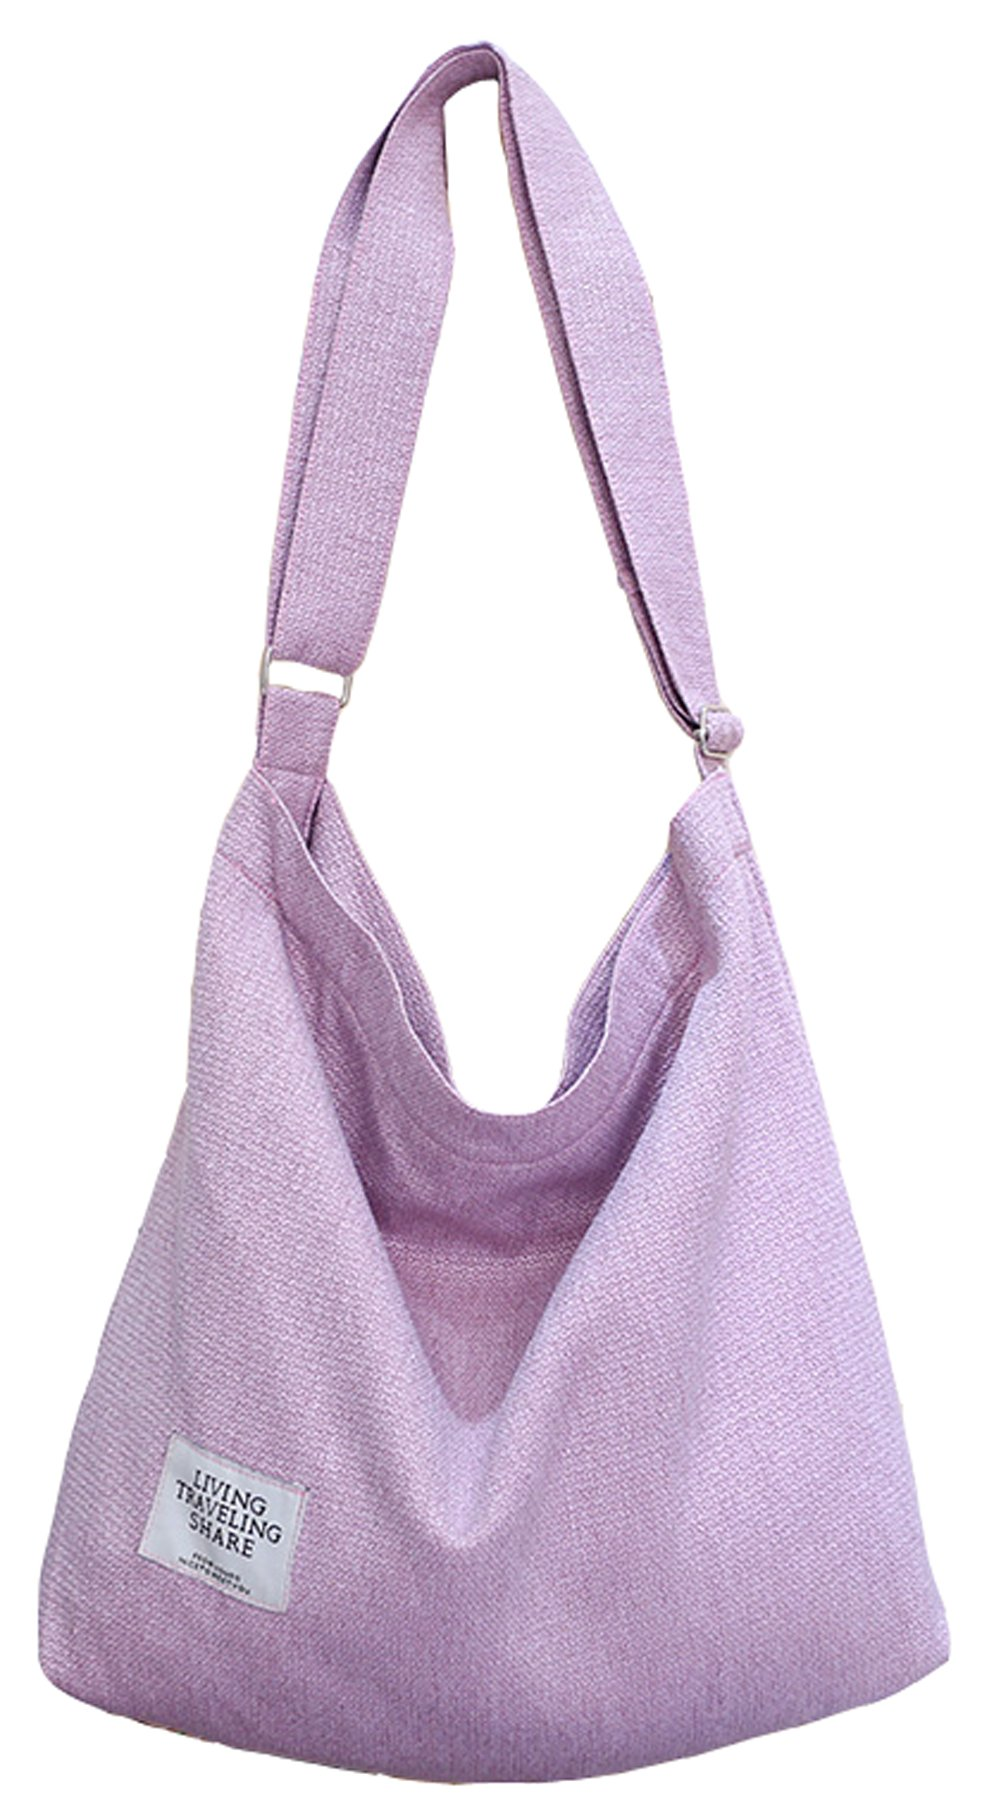 Covelin Women's Retro Large Size Canvas Shoulder Bag Hobo Crossbody Handbag Casual Tote Pink